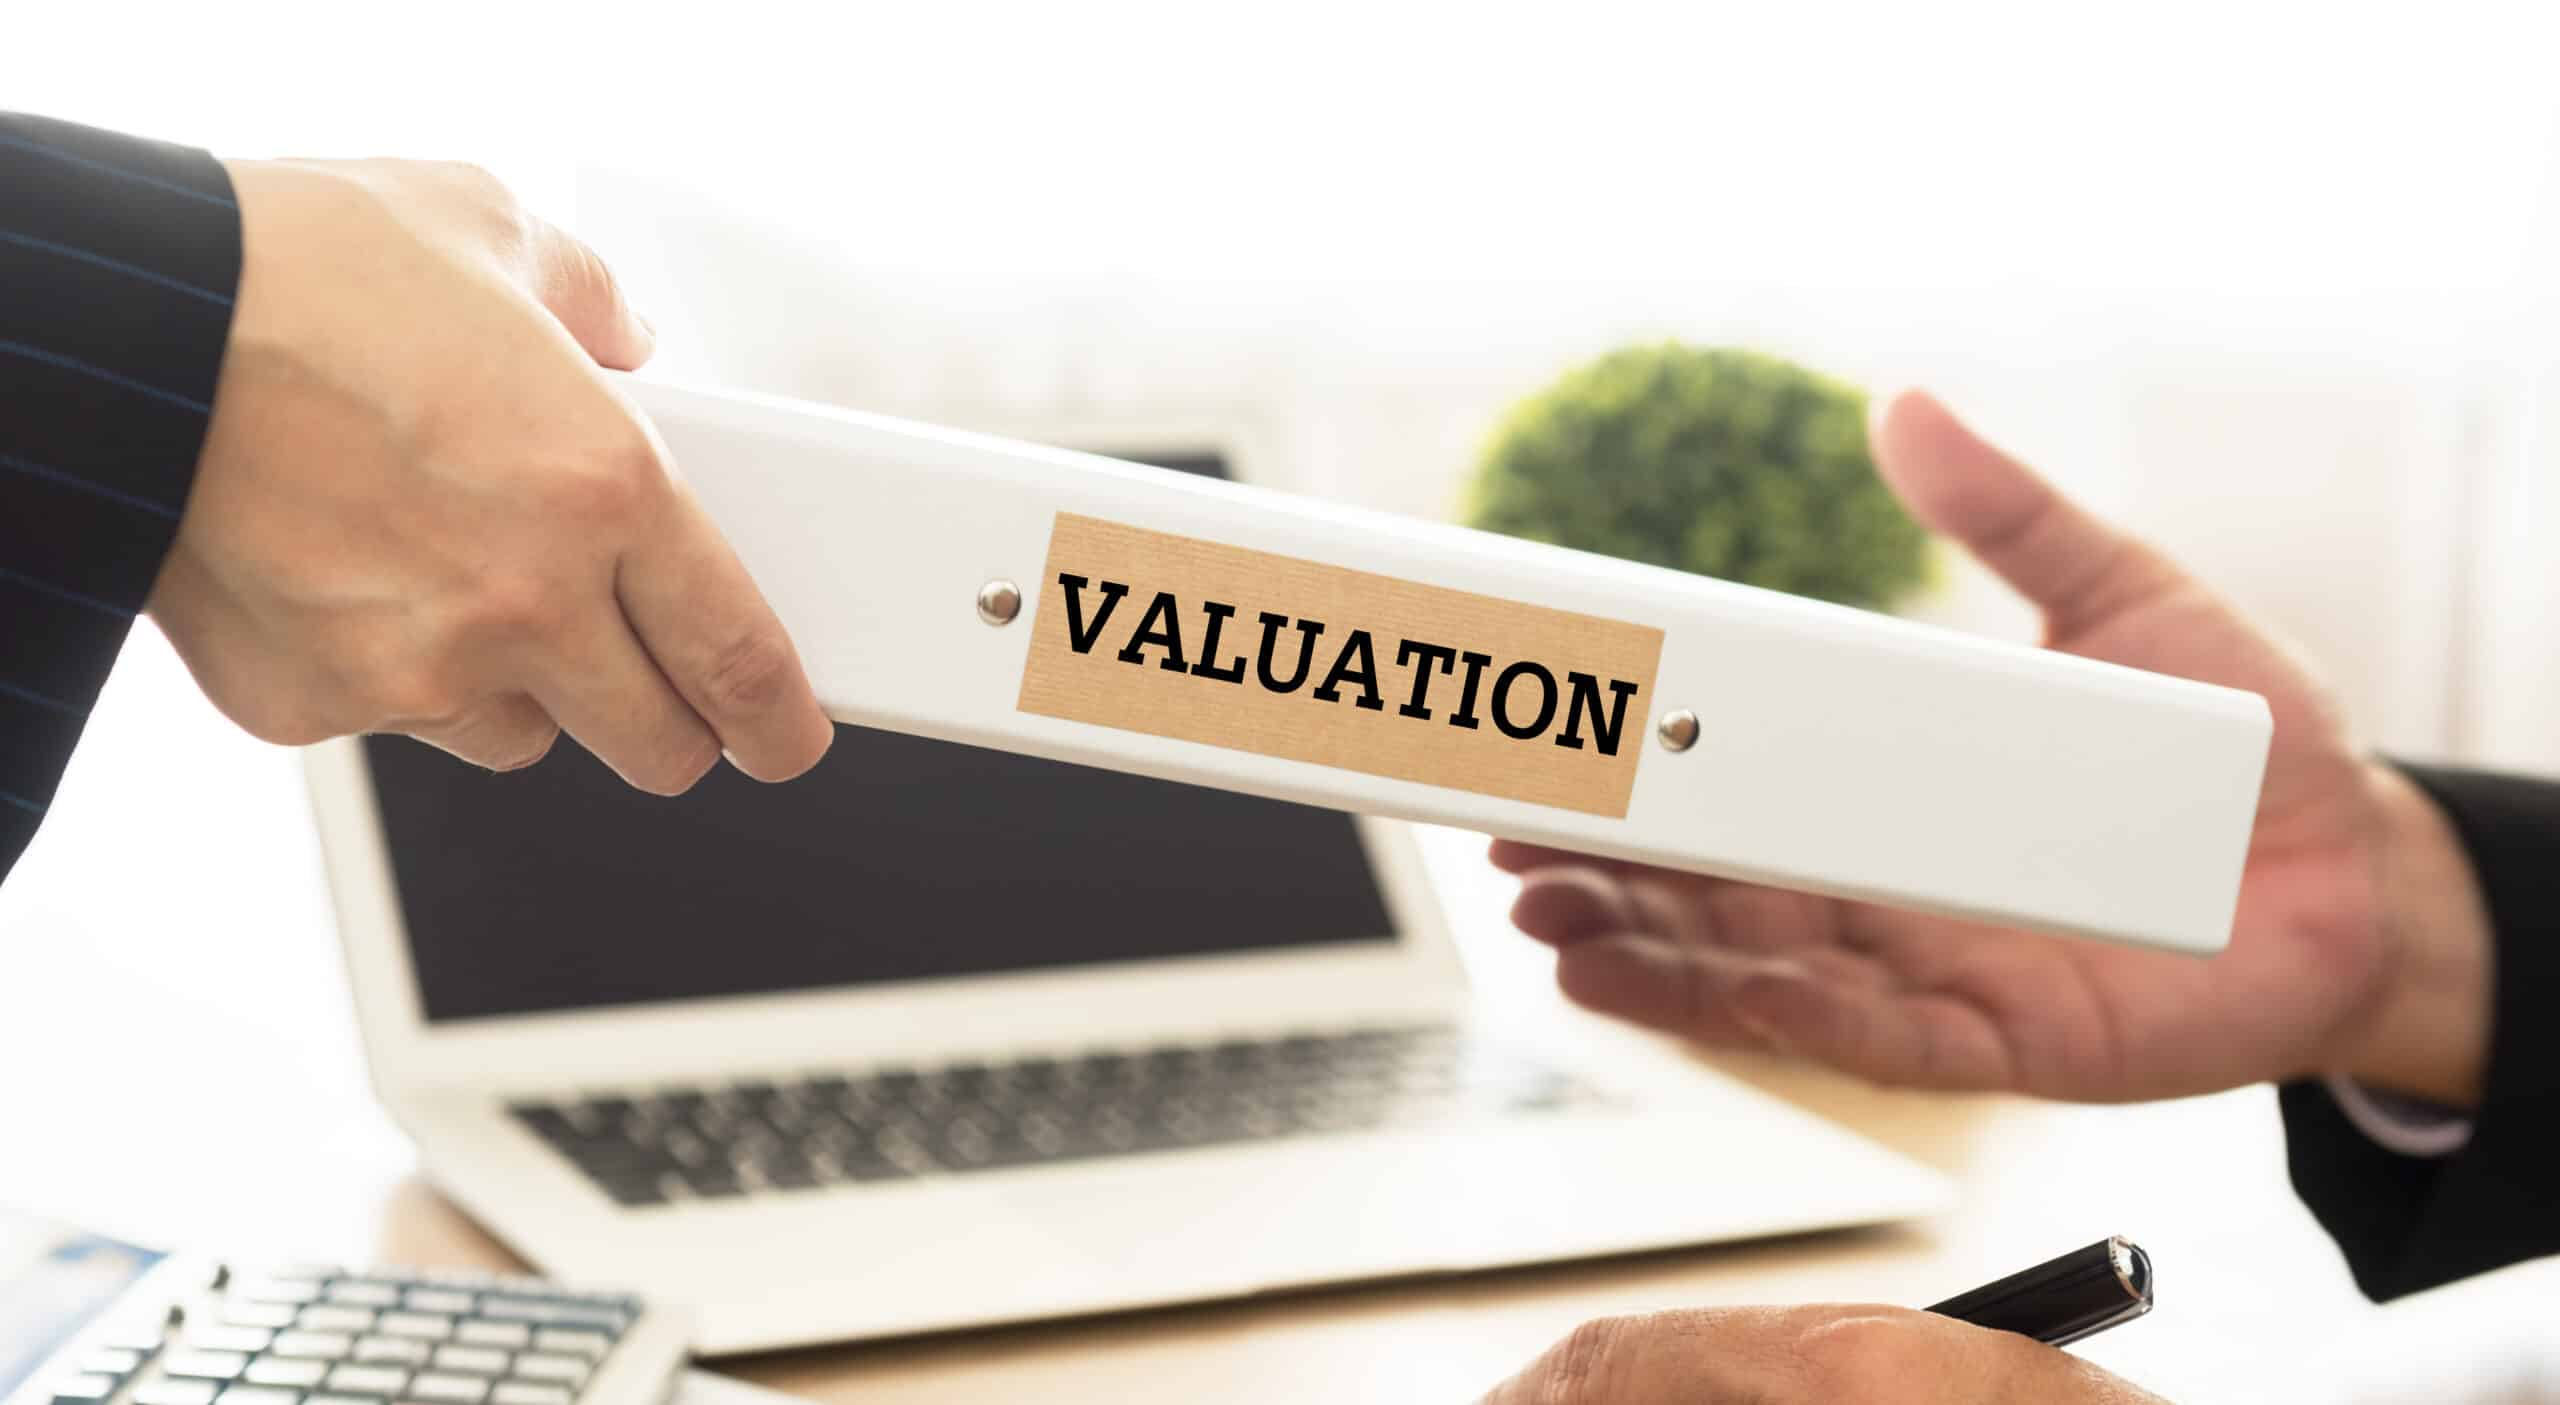 Why would you need a valuation?